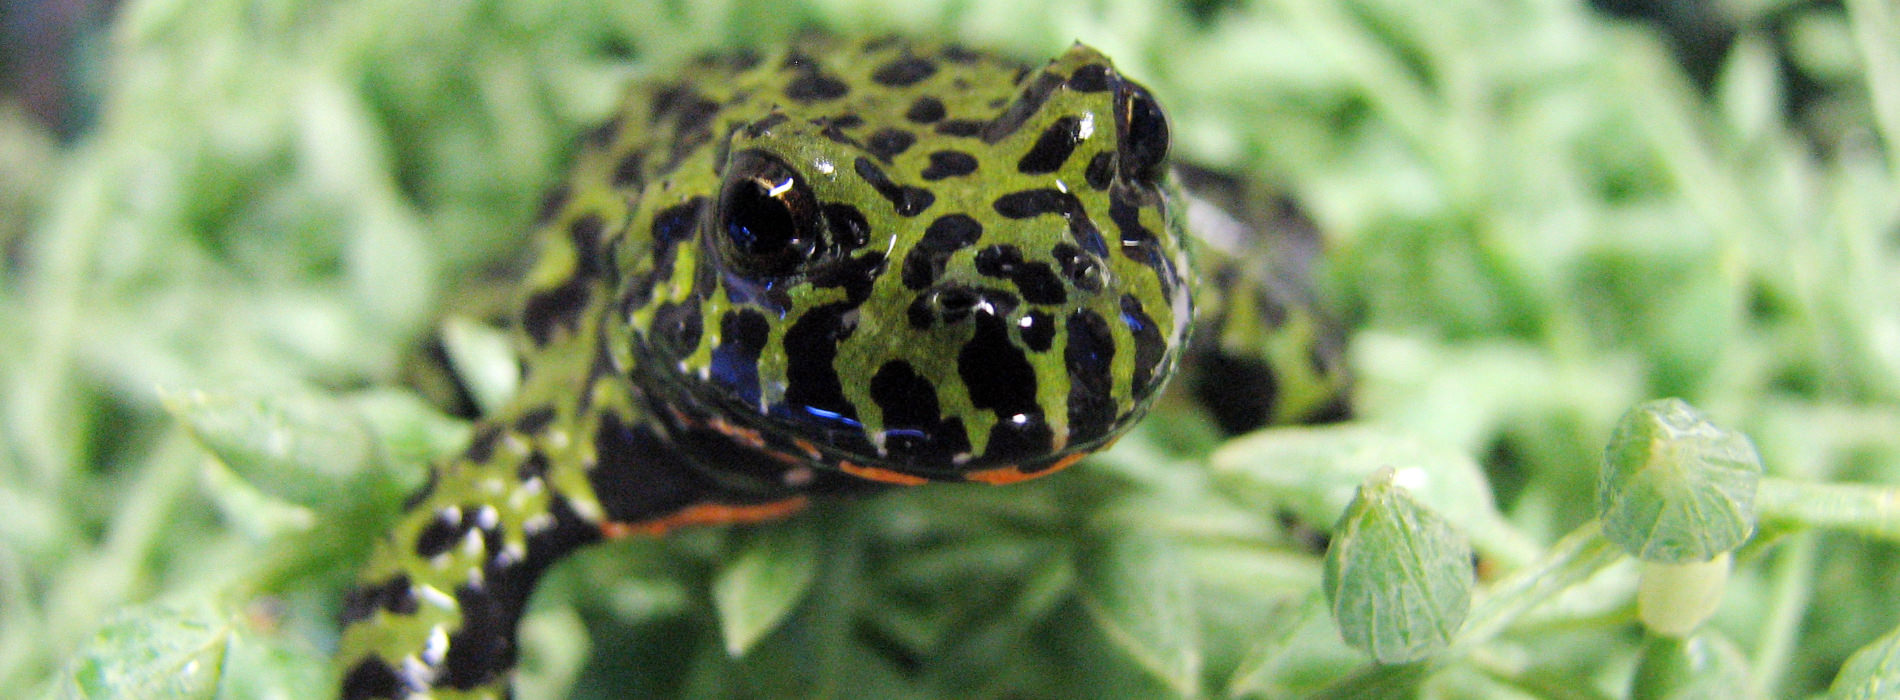 Oriental Fire Bellied Toad hiding in aquatic green plant